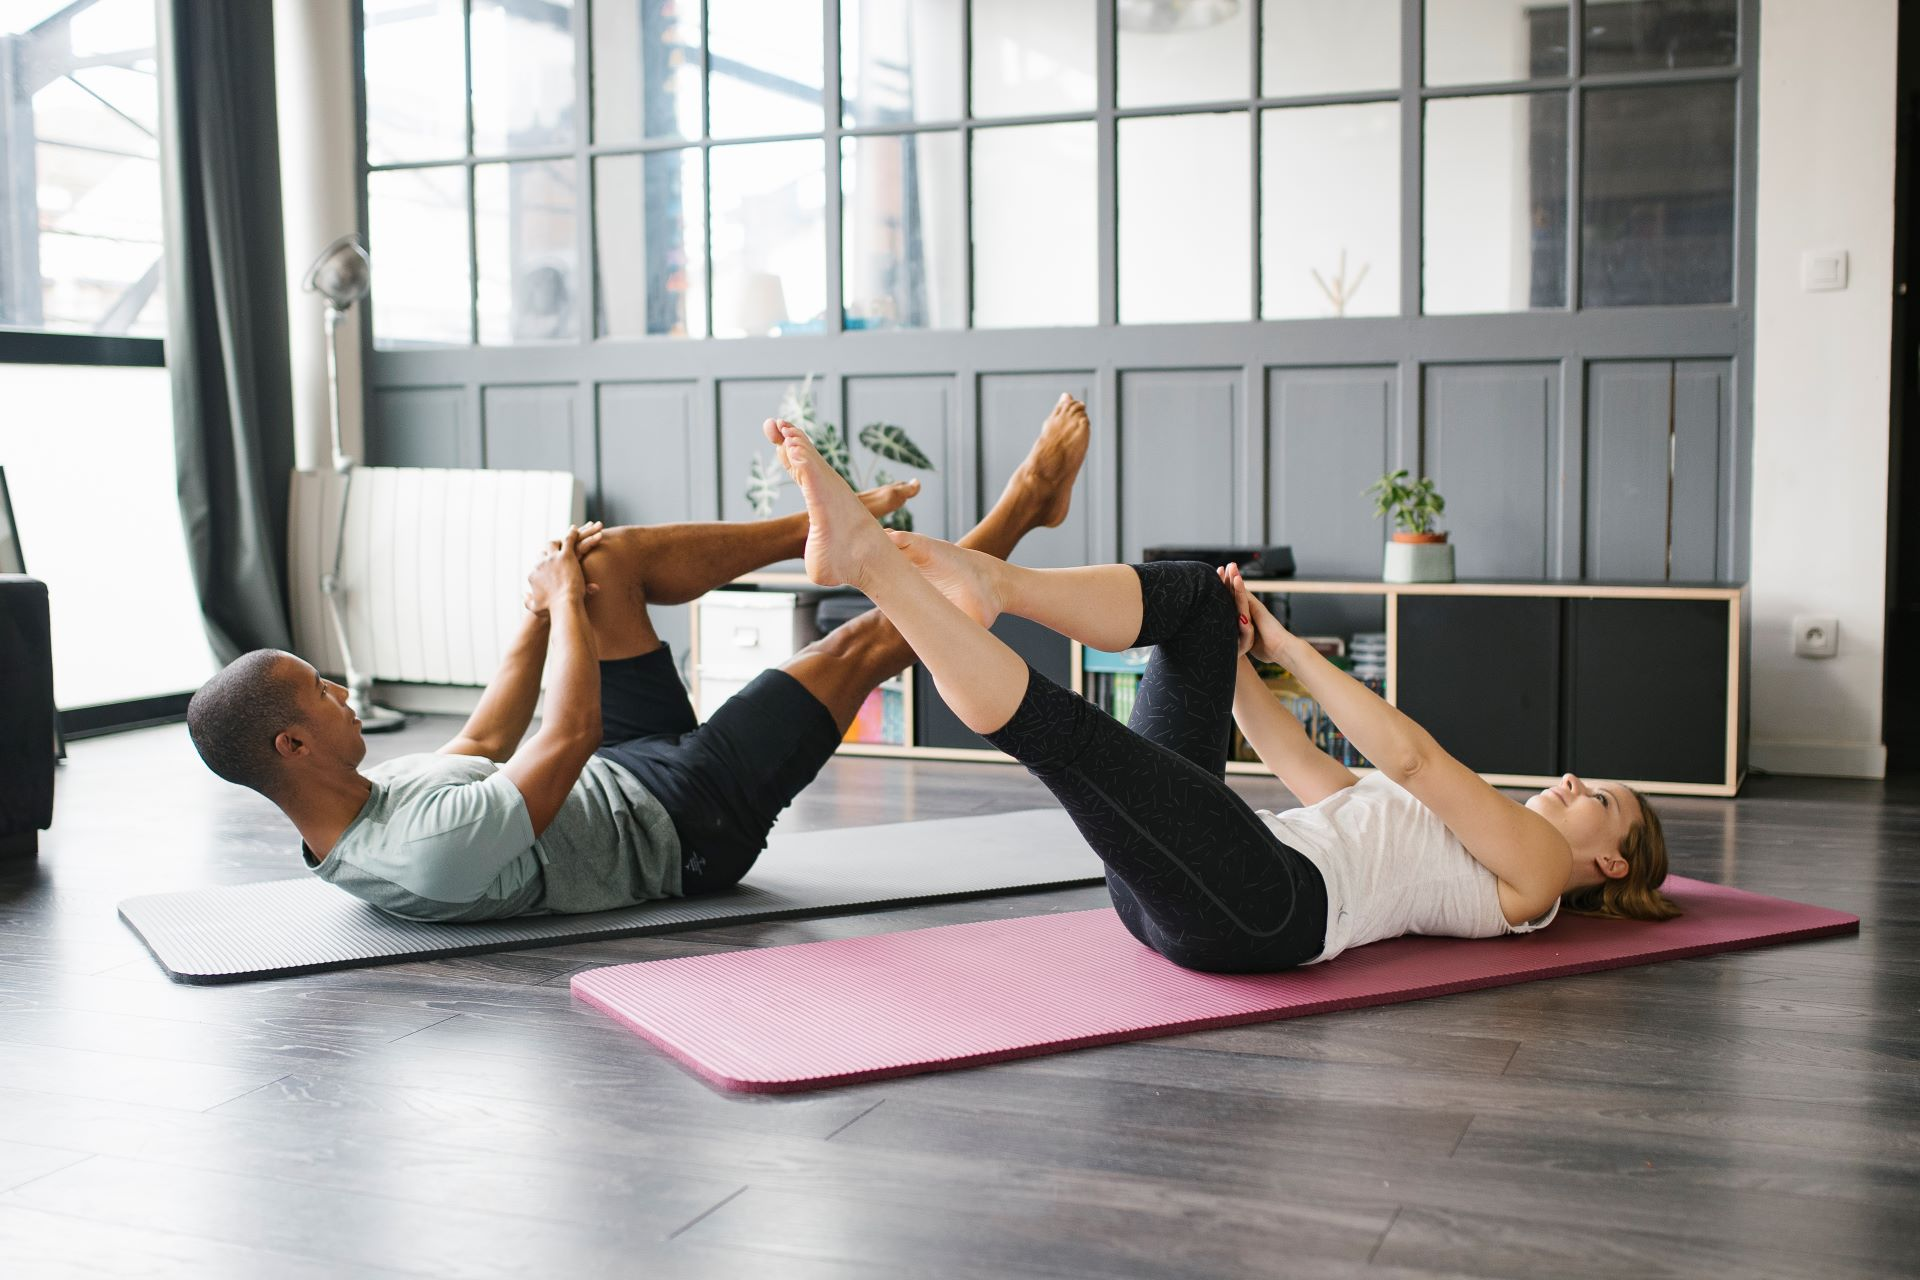 Essential Clothing And Equipment For Pilates Class